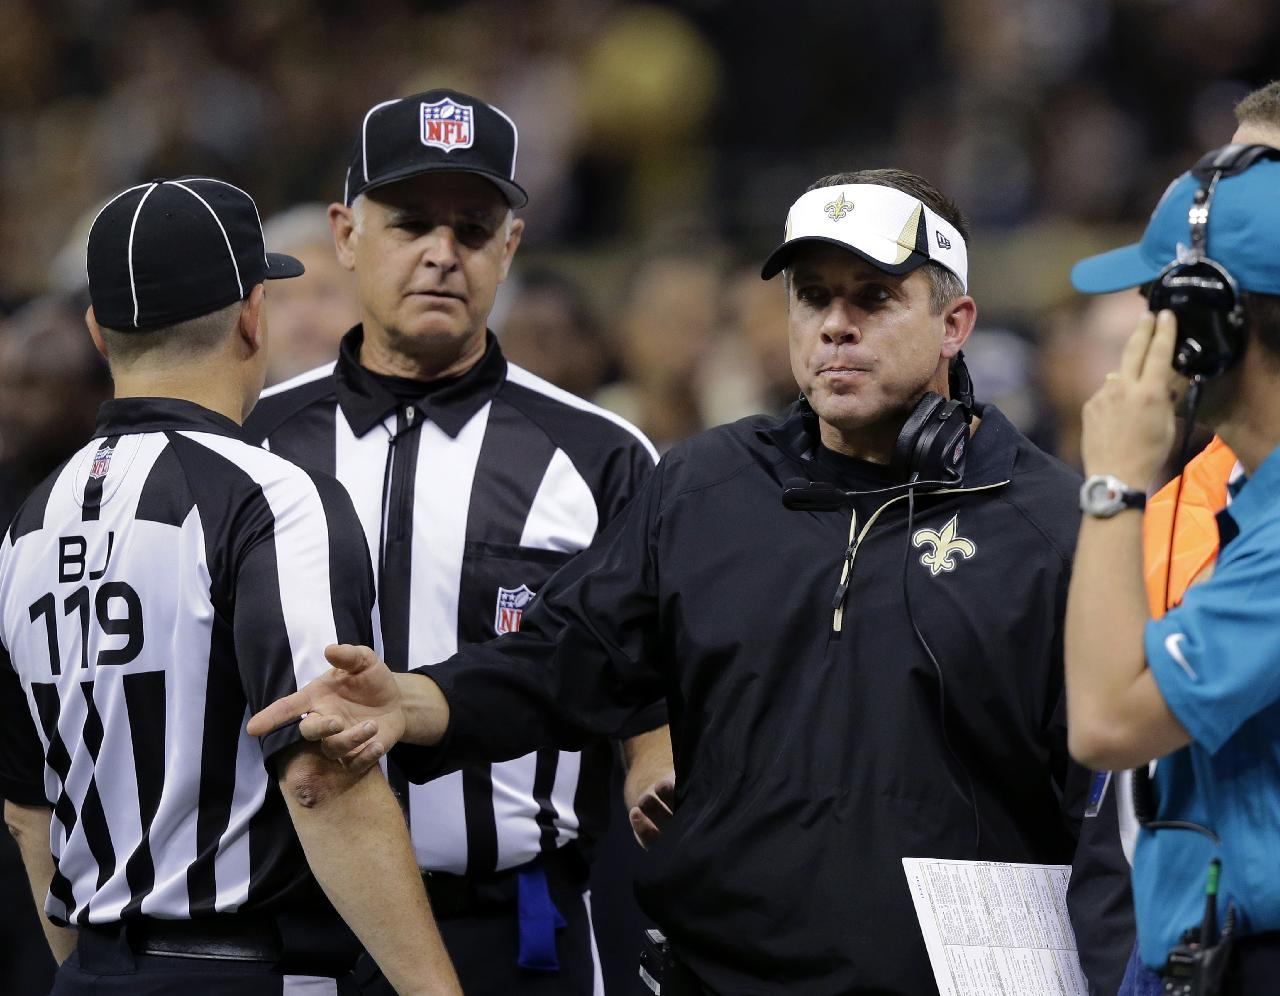 New Orleans Saints head coach Sean Payton challenges the officials in the first half of an NFL football game against the San Francisco 49ers in New Orleans, Sunday, Nov. 17, 2013